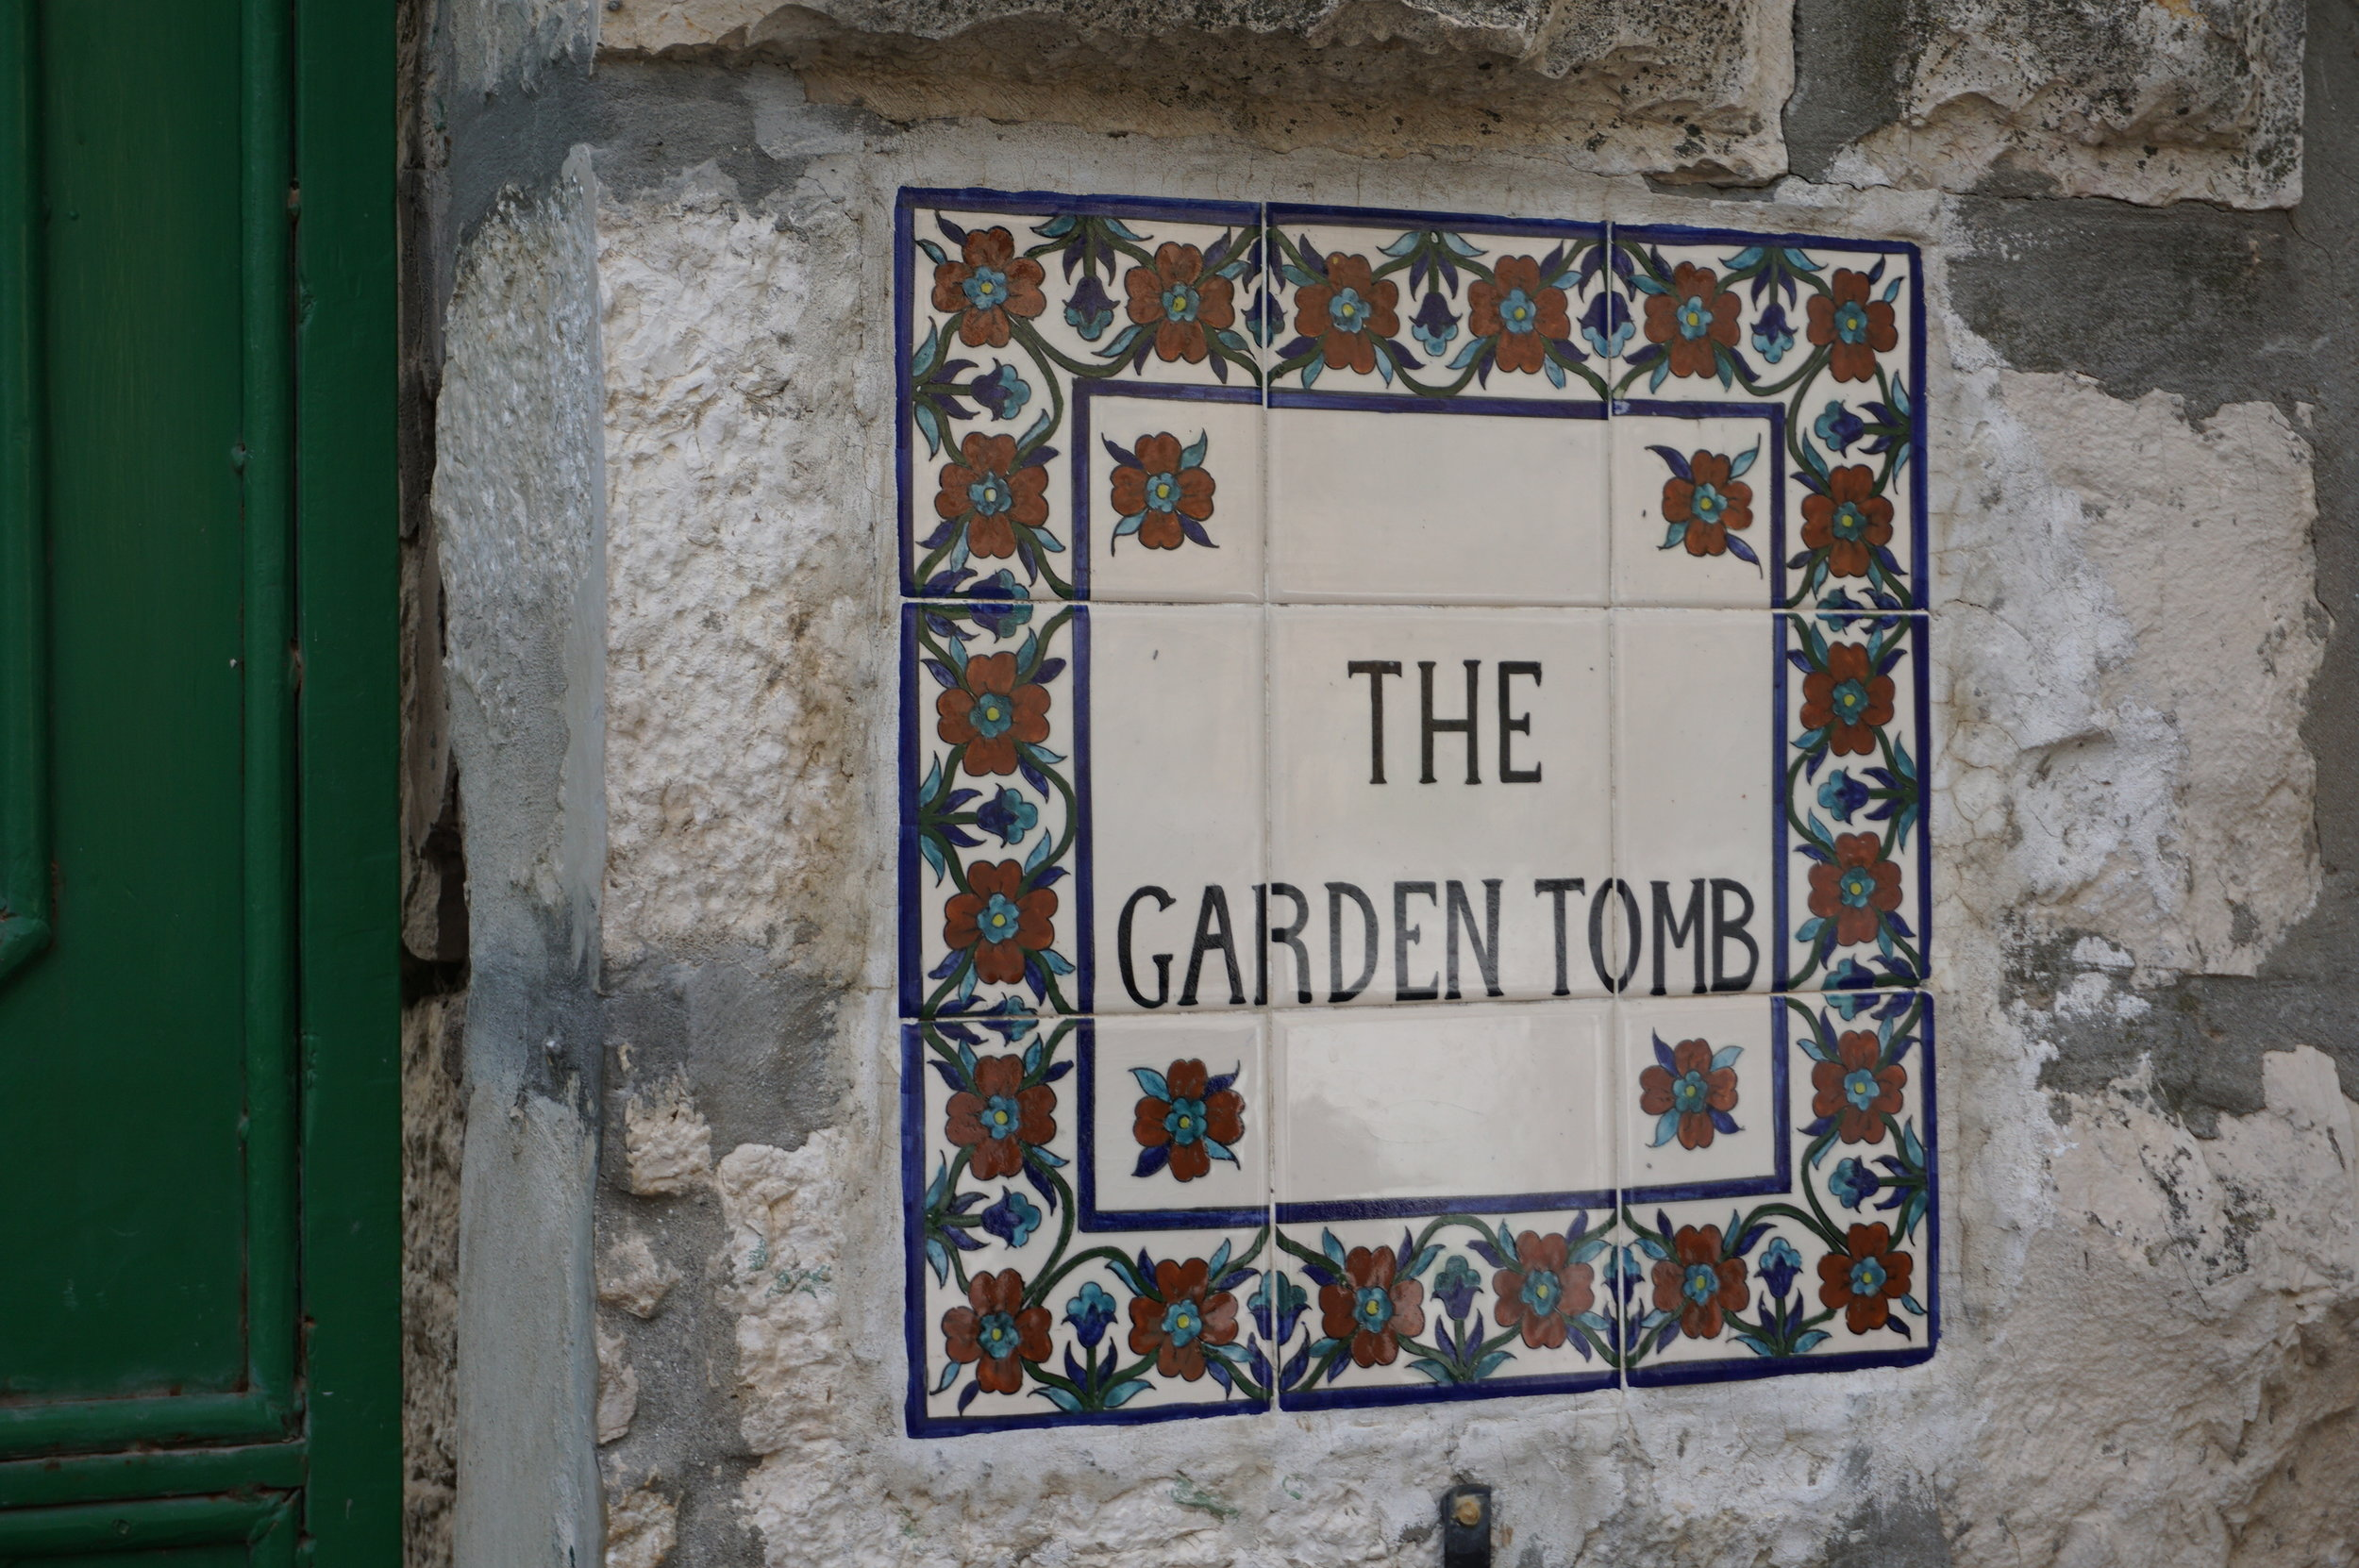 The Garden Tomb Jerusalem Israel.JPG